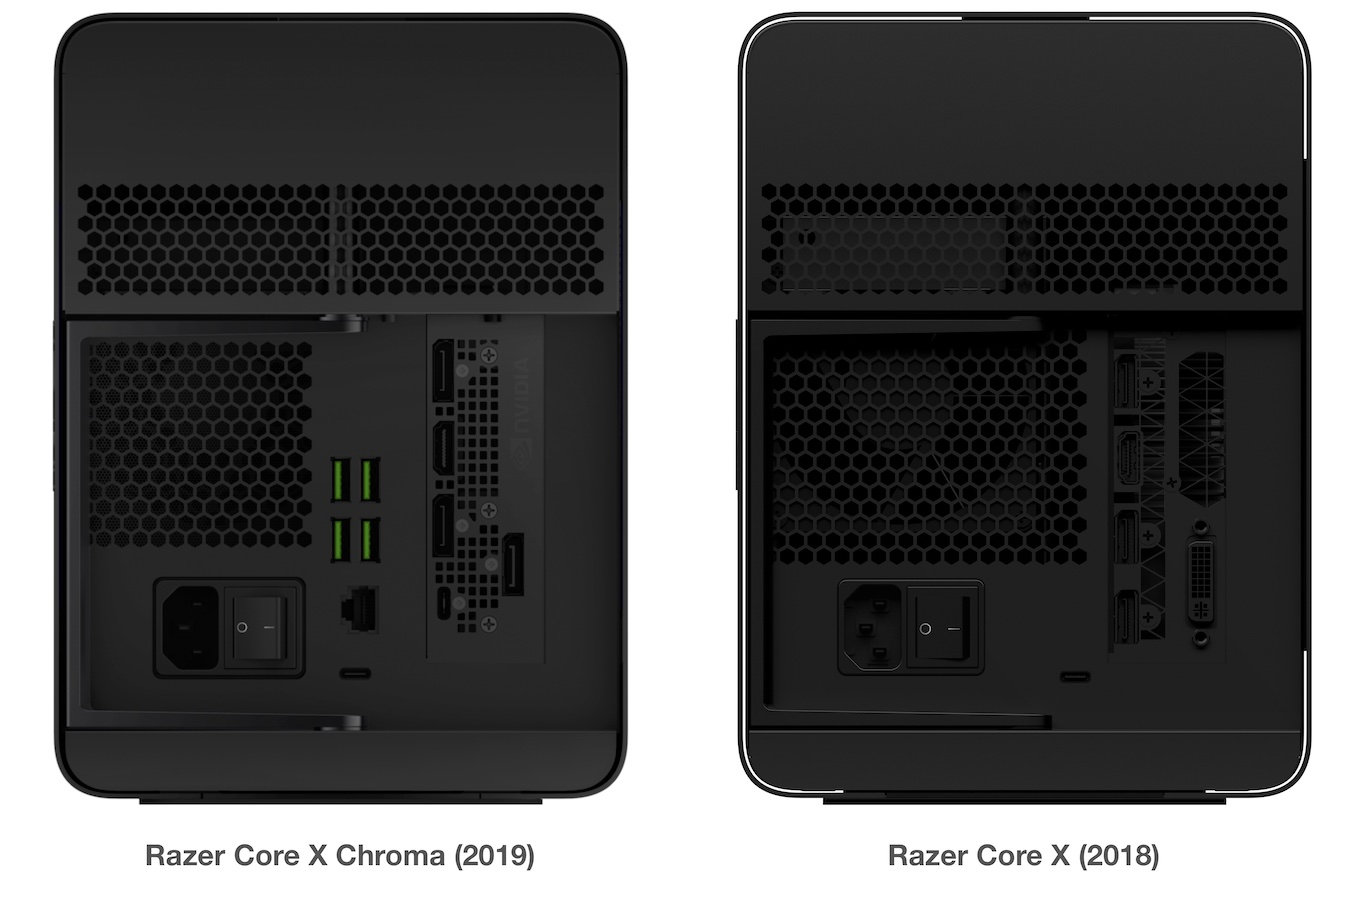 Razer Core X 2018 and Chroma 2019